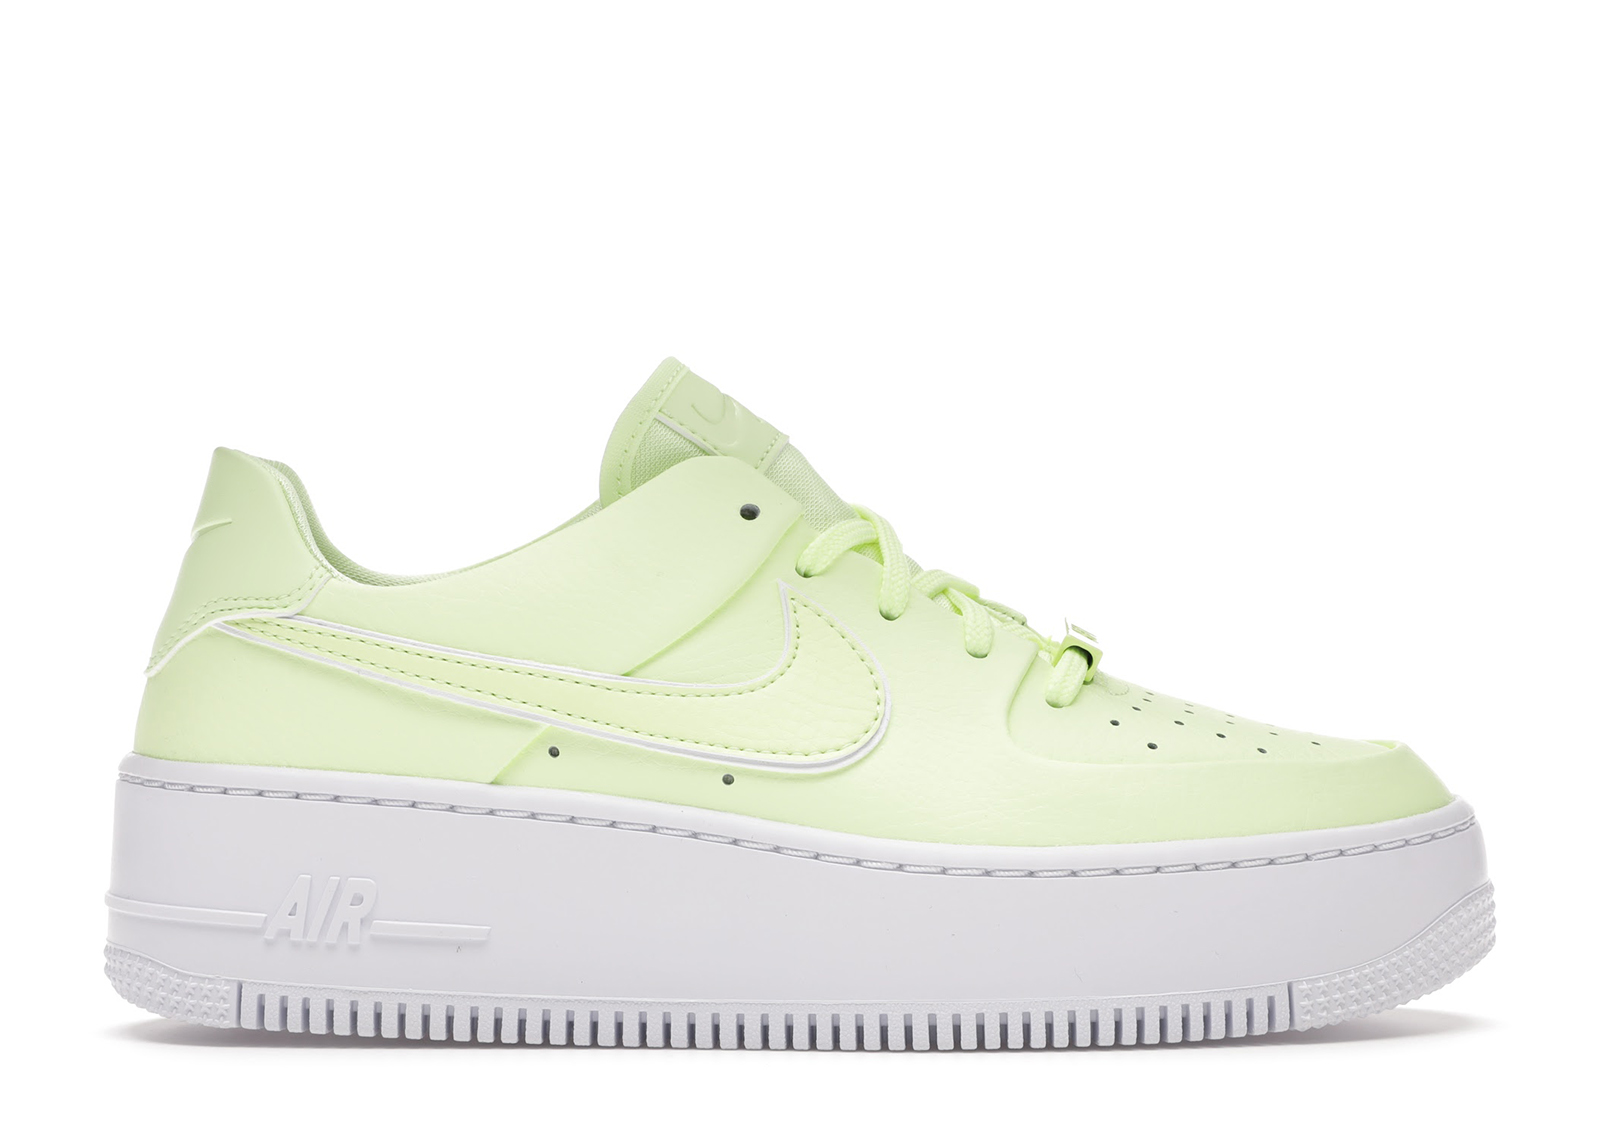 Nike Air Force 1 Sage Low Barely Volt (W) - CJ1642-700